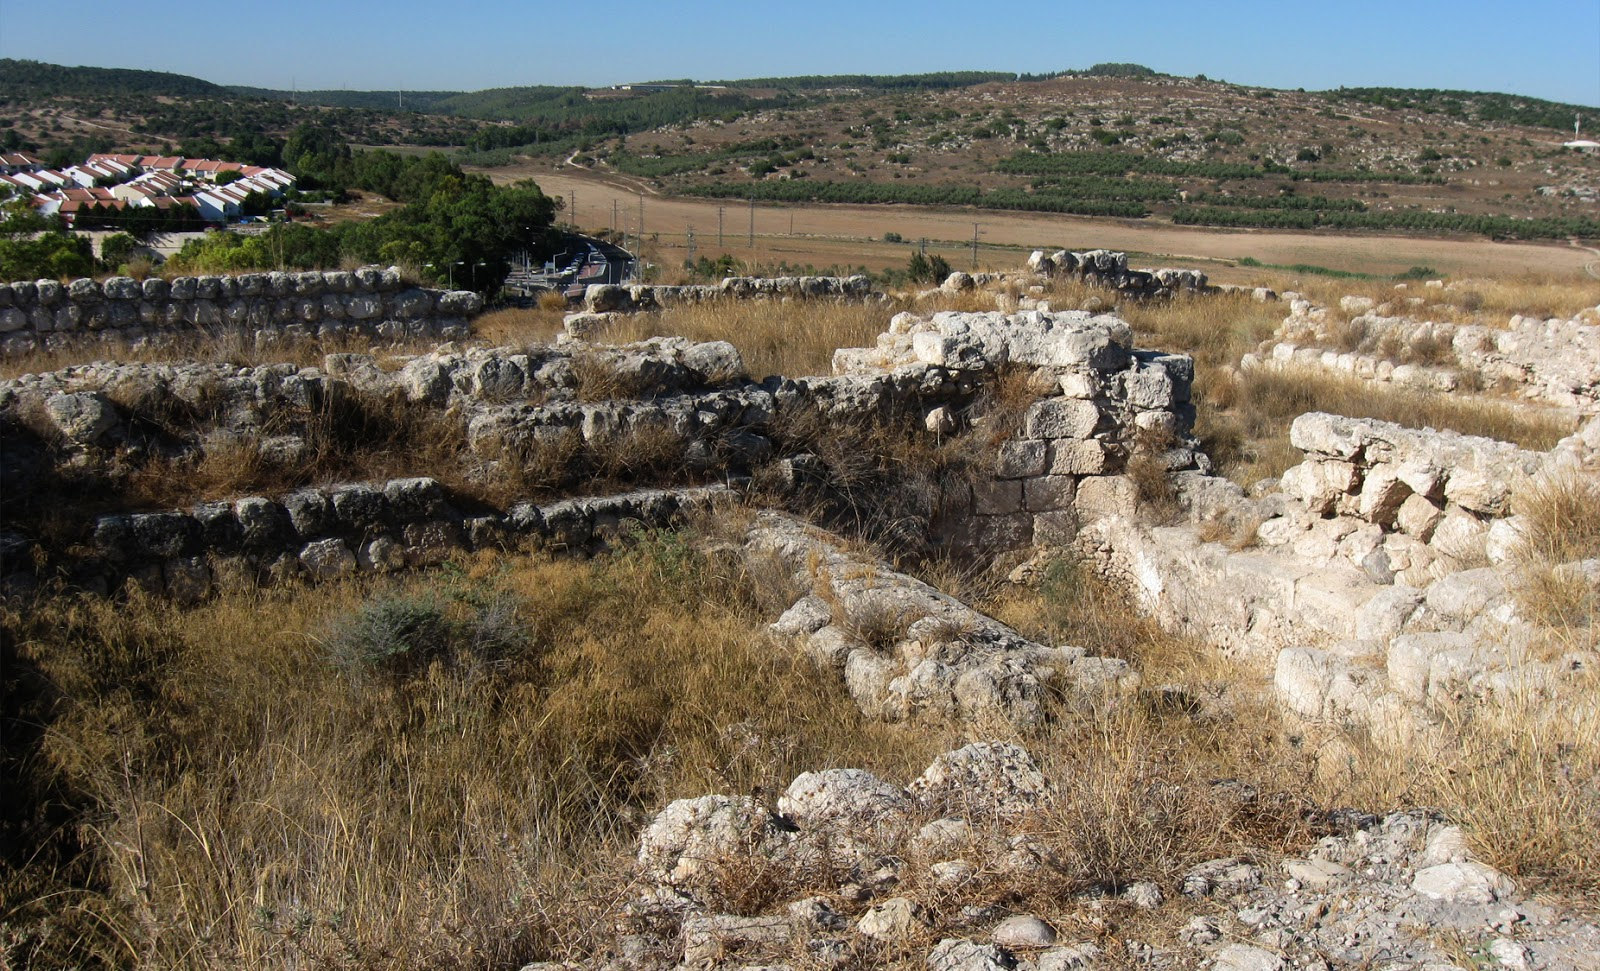 Stone Of Abel Beth Shemesh: 3,000 Year Old Temple Unearthed In Israel